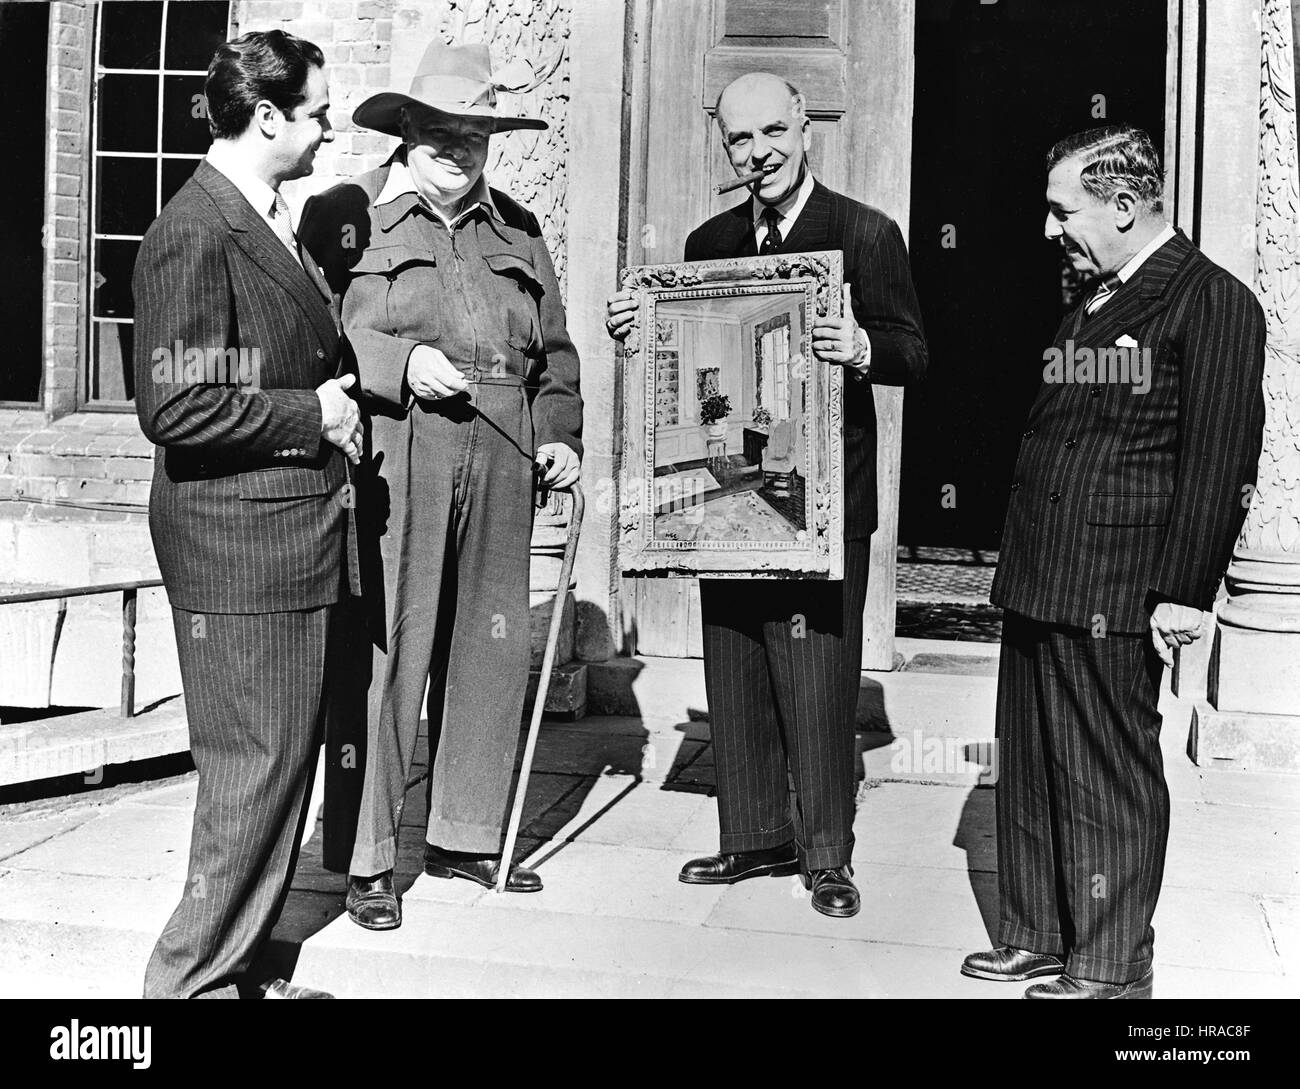 Churchill at Chartwell with the Men from Brazil and his painting 'At Westerham'. - Stock Image